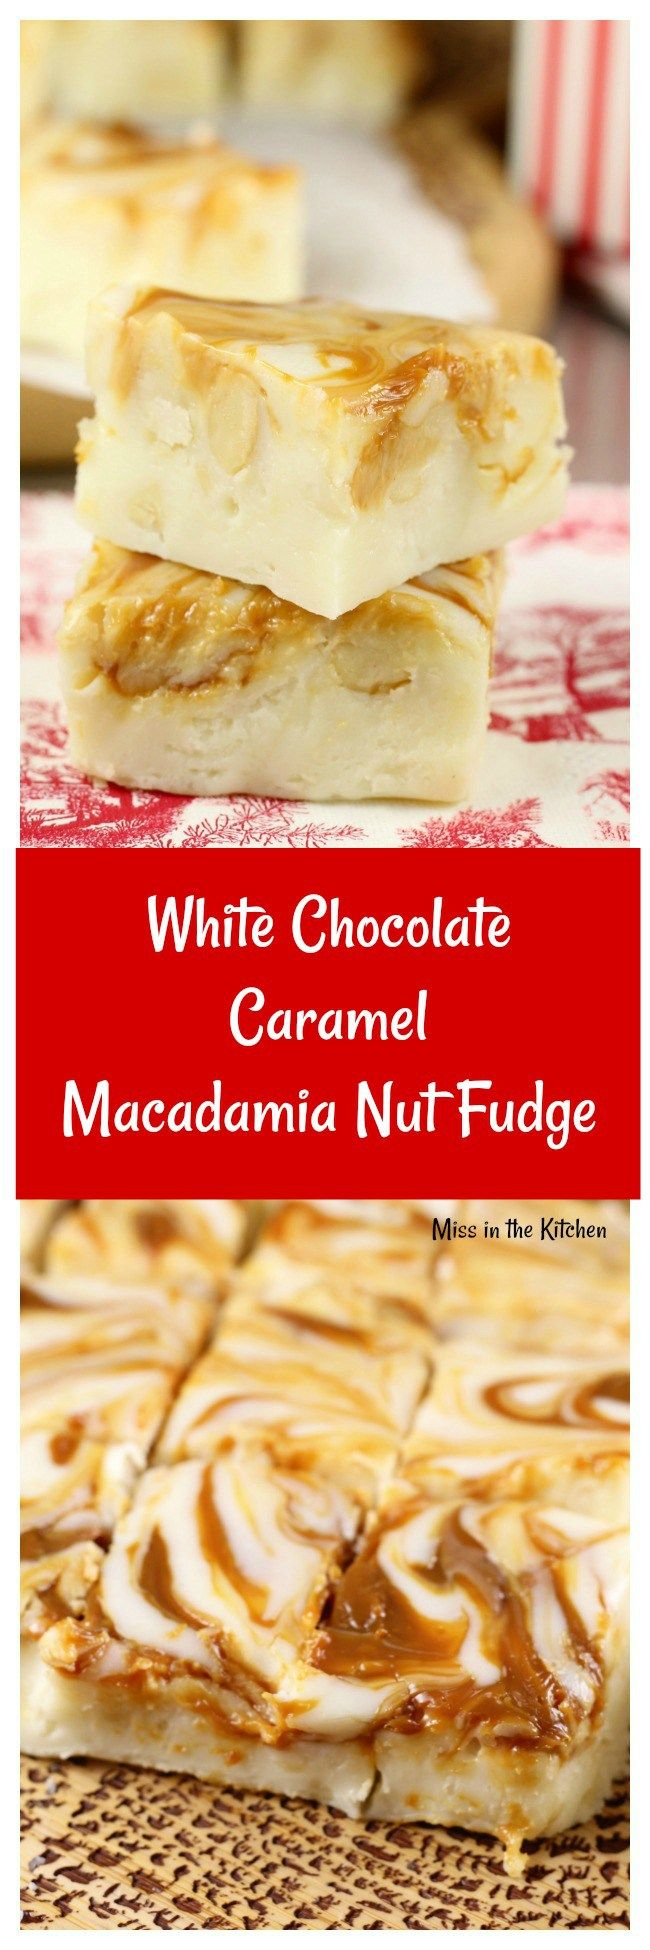 White Chocolate Caramel Macadamia Nut Fudge is a decadent treat for the holidays! Just 5 minutes to make and six ingredients, this is one of the easiest treats you can make!